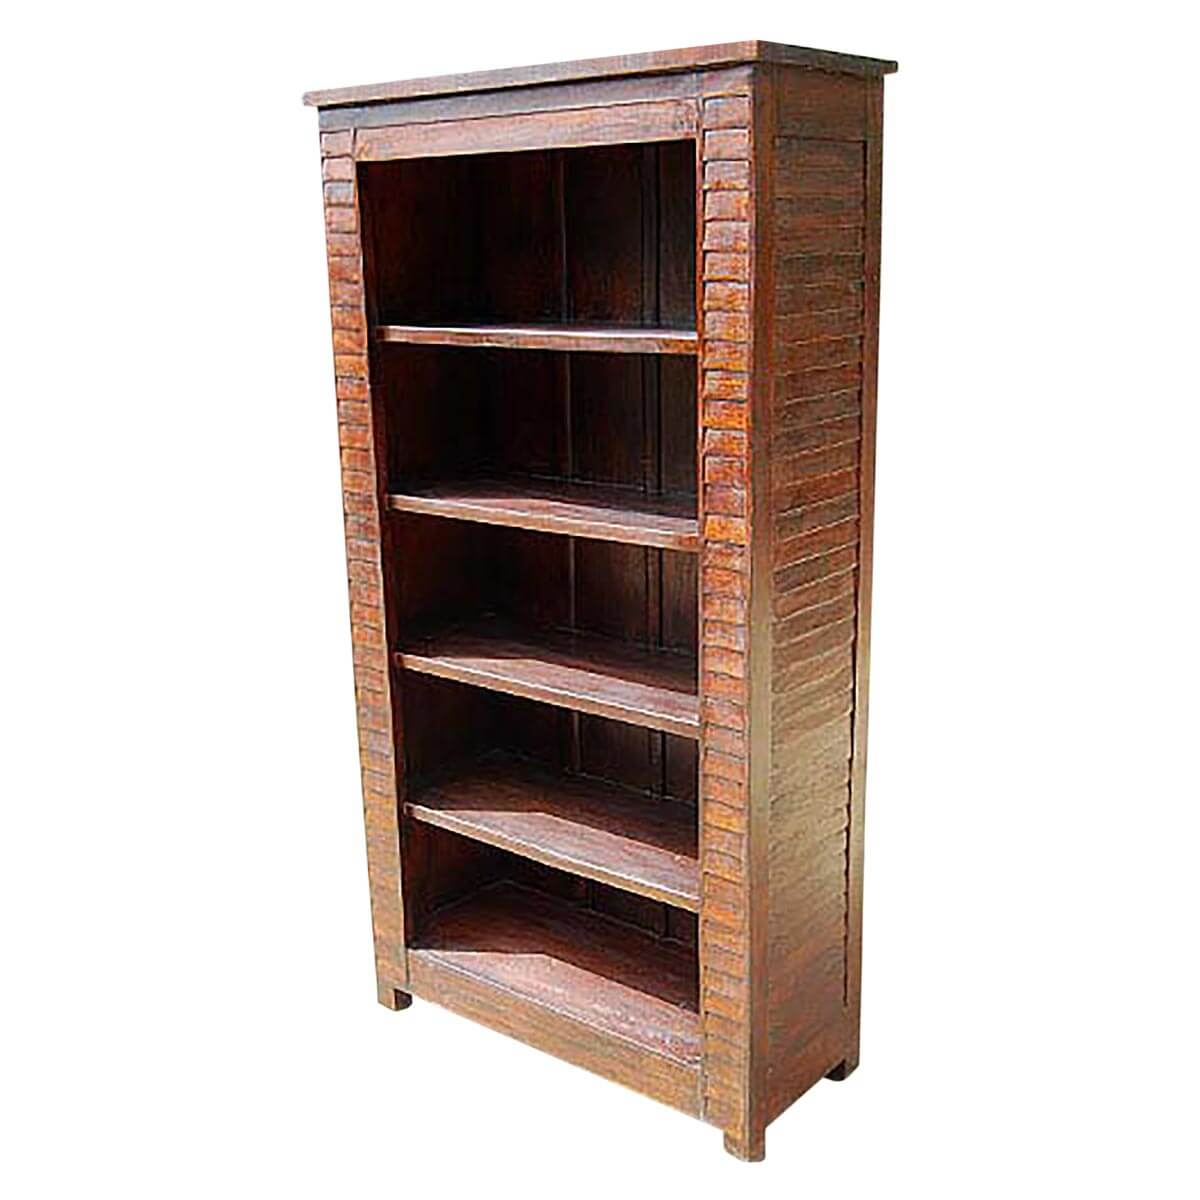 Timber Bookcase: Solid Wood Large 5 Shelves Bookcase Book Shelf Armoire